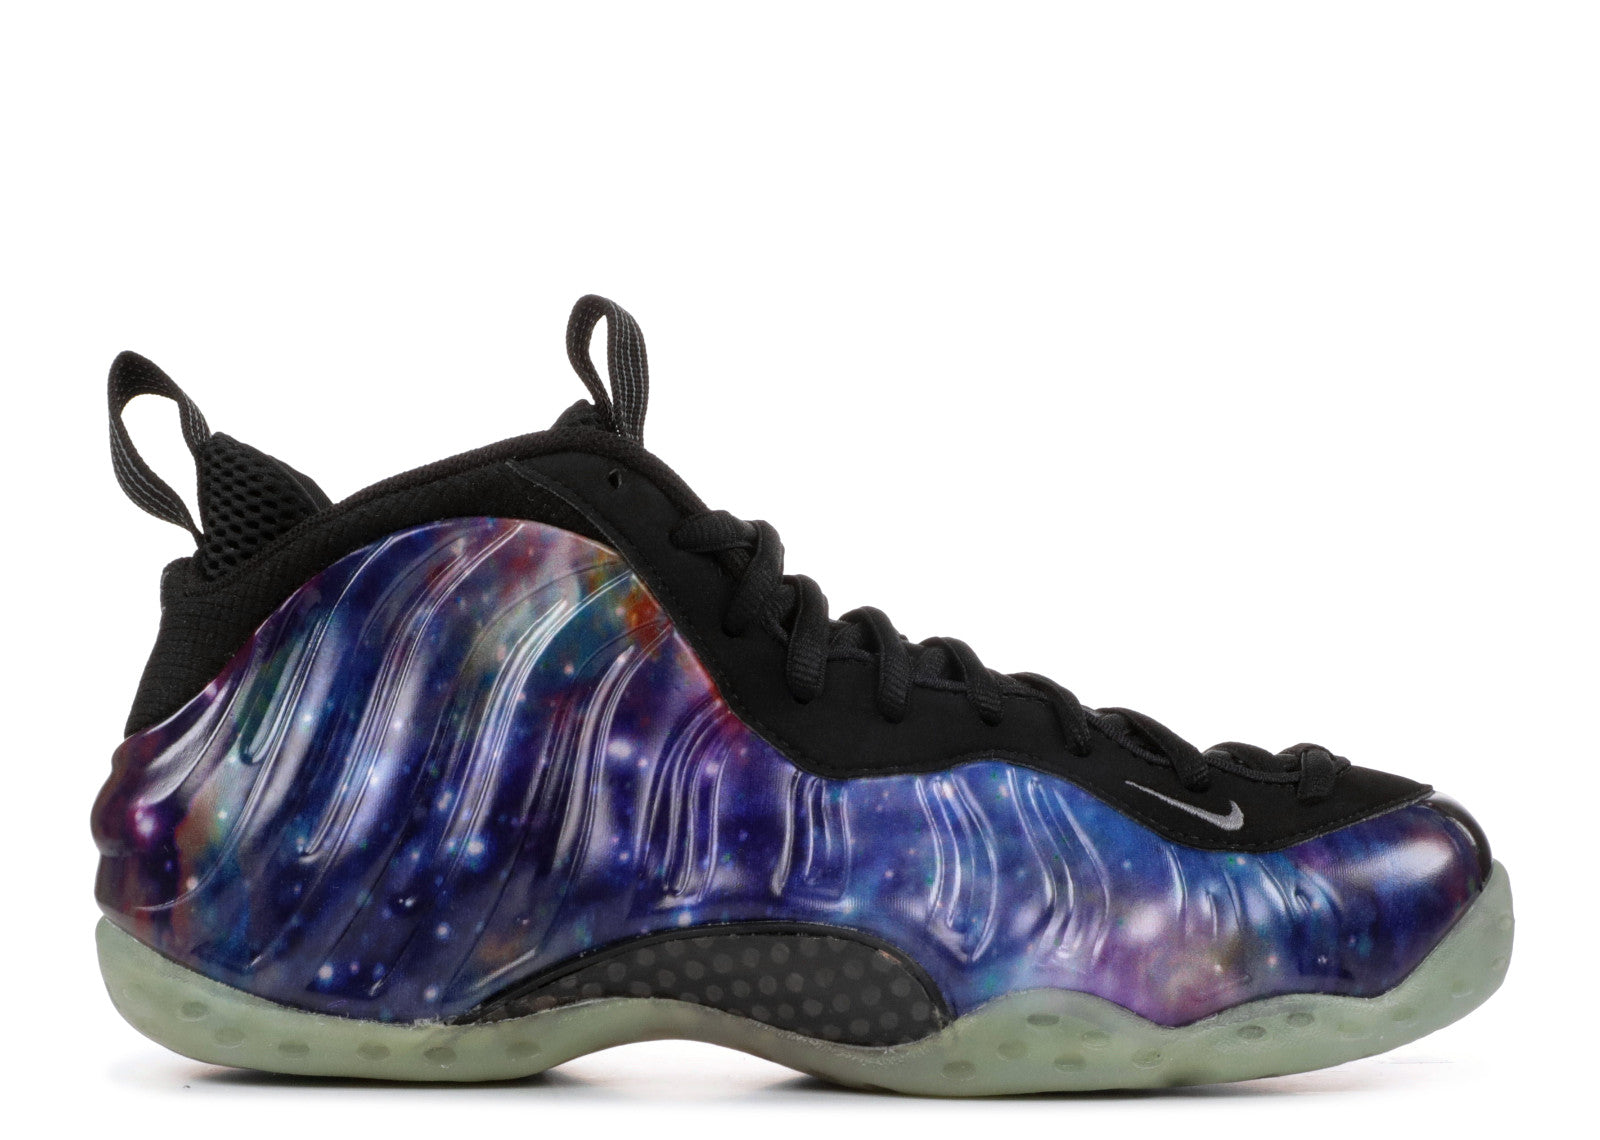 39d85db656a61c Nike Air Foamposite One NRG  Galaxy  - Sneakest